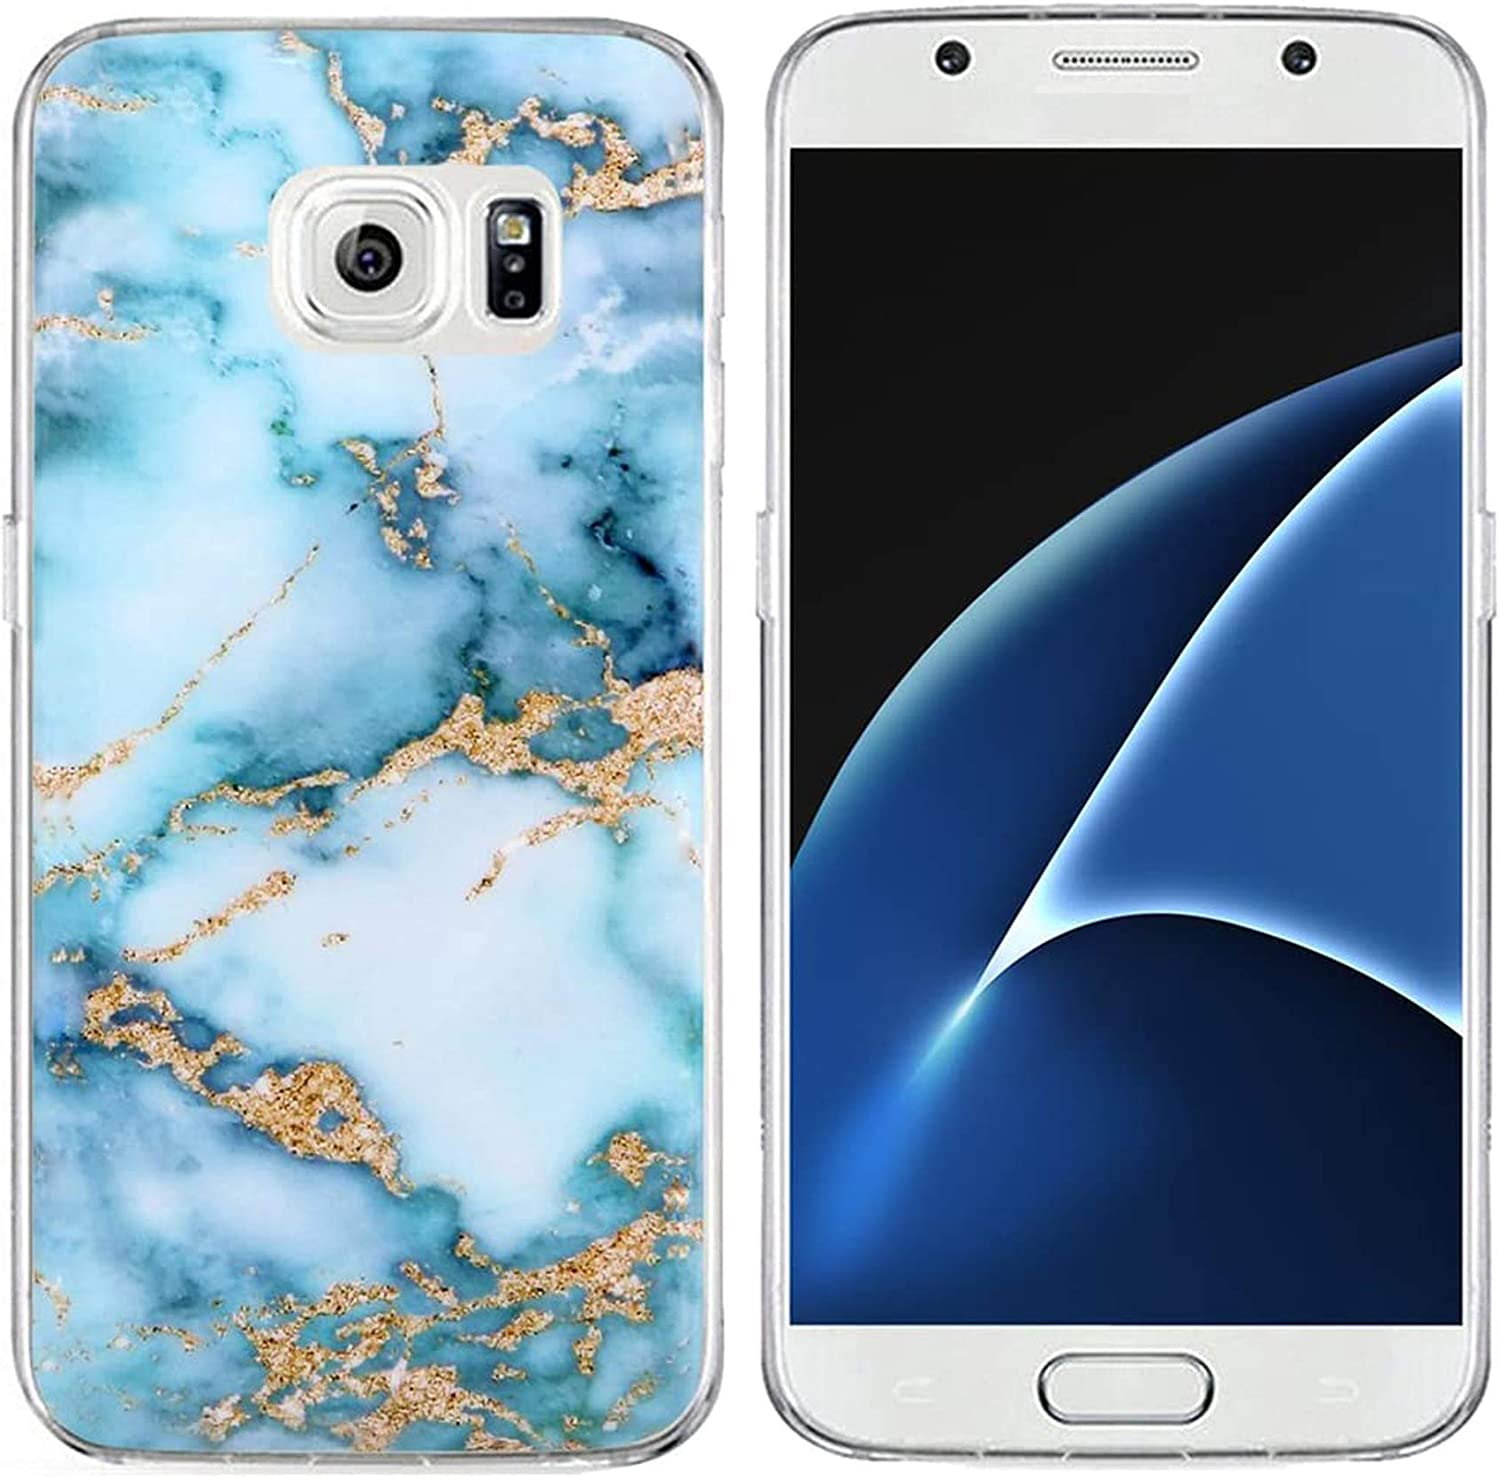 S6 Case Granite & Galaxy S6 Protector & MUQR Bumper Rubber Gel Silicone Slim Drop Proof Protection Cover Compatible with Samsung Galaxy S6 & Blue Marble Pattern